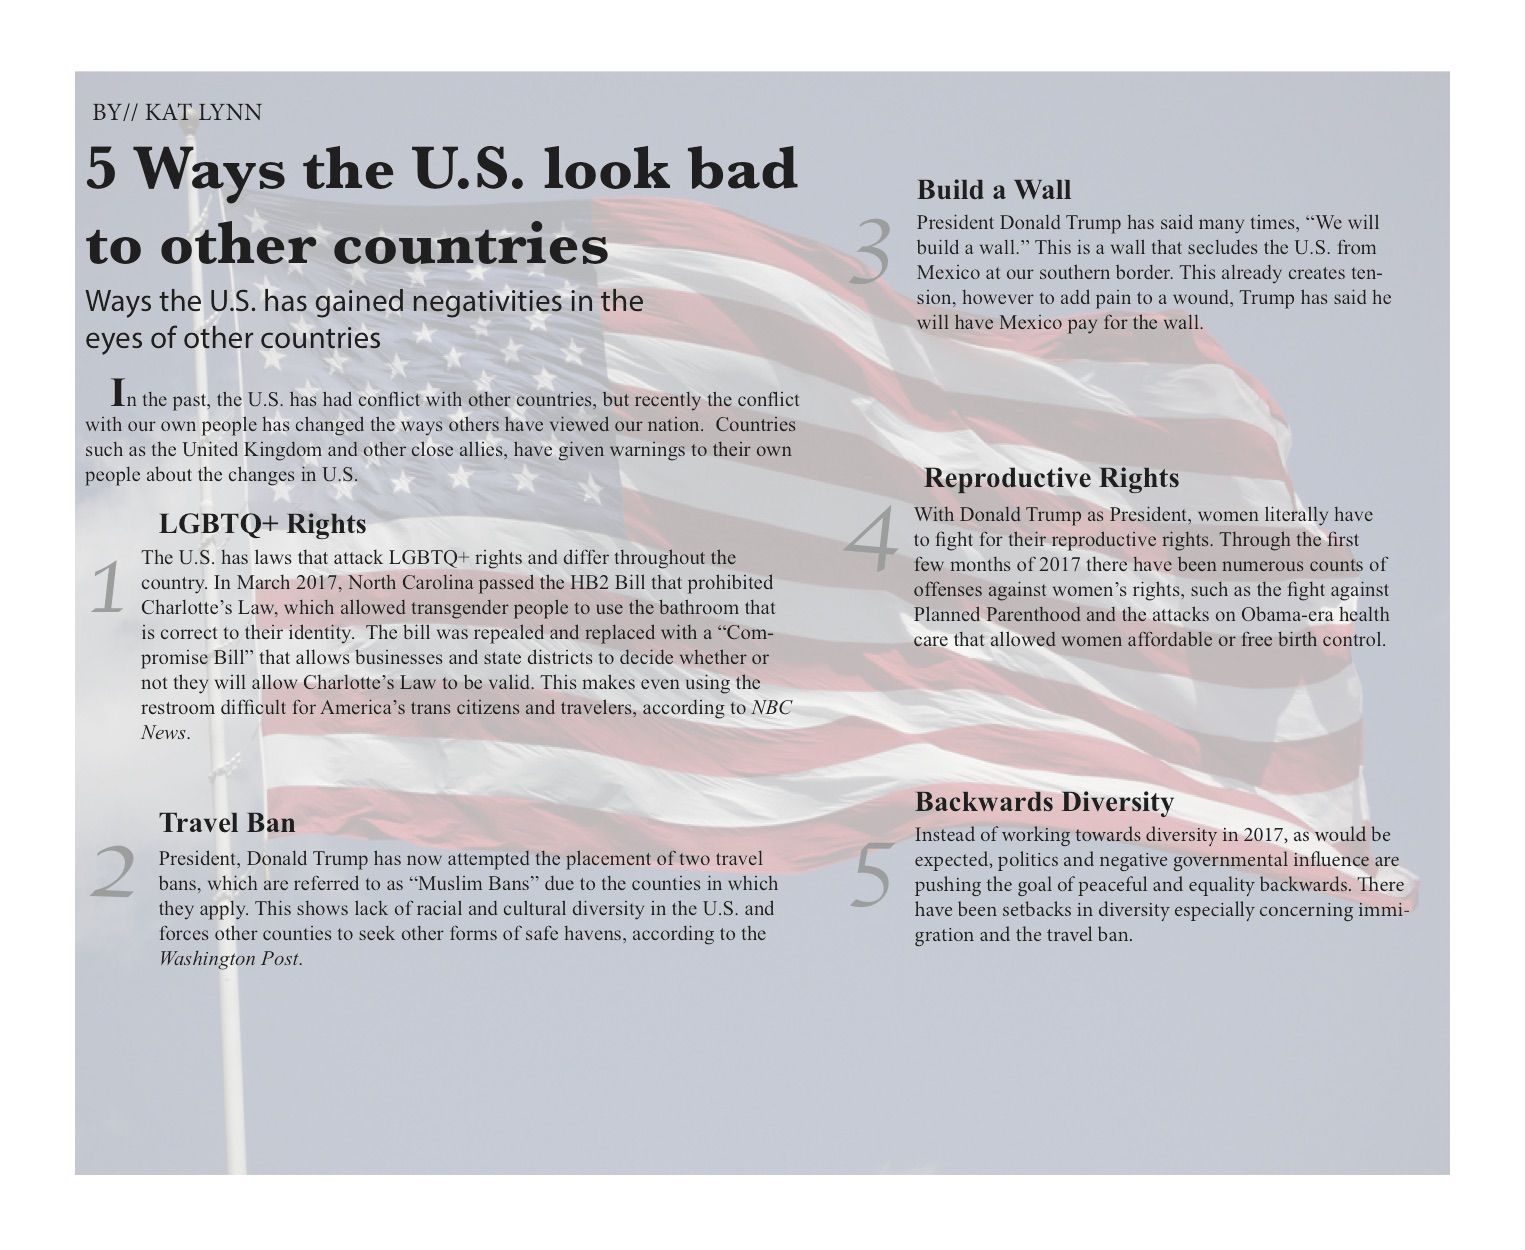 5 Ways the U.S. look bad to other countries by// Kat Lynn